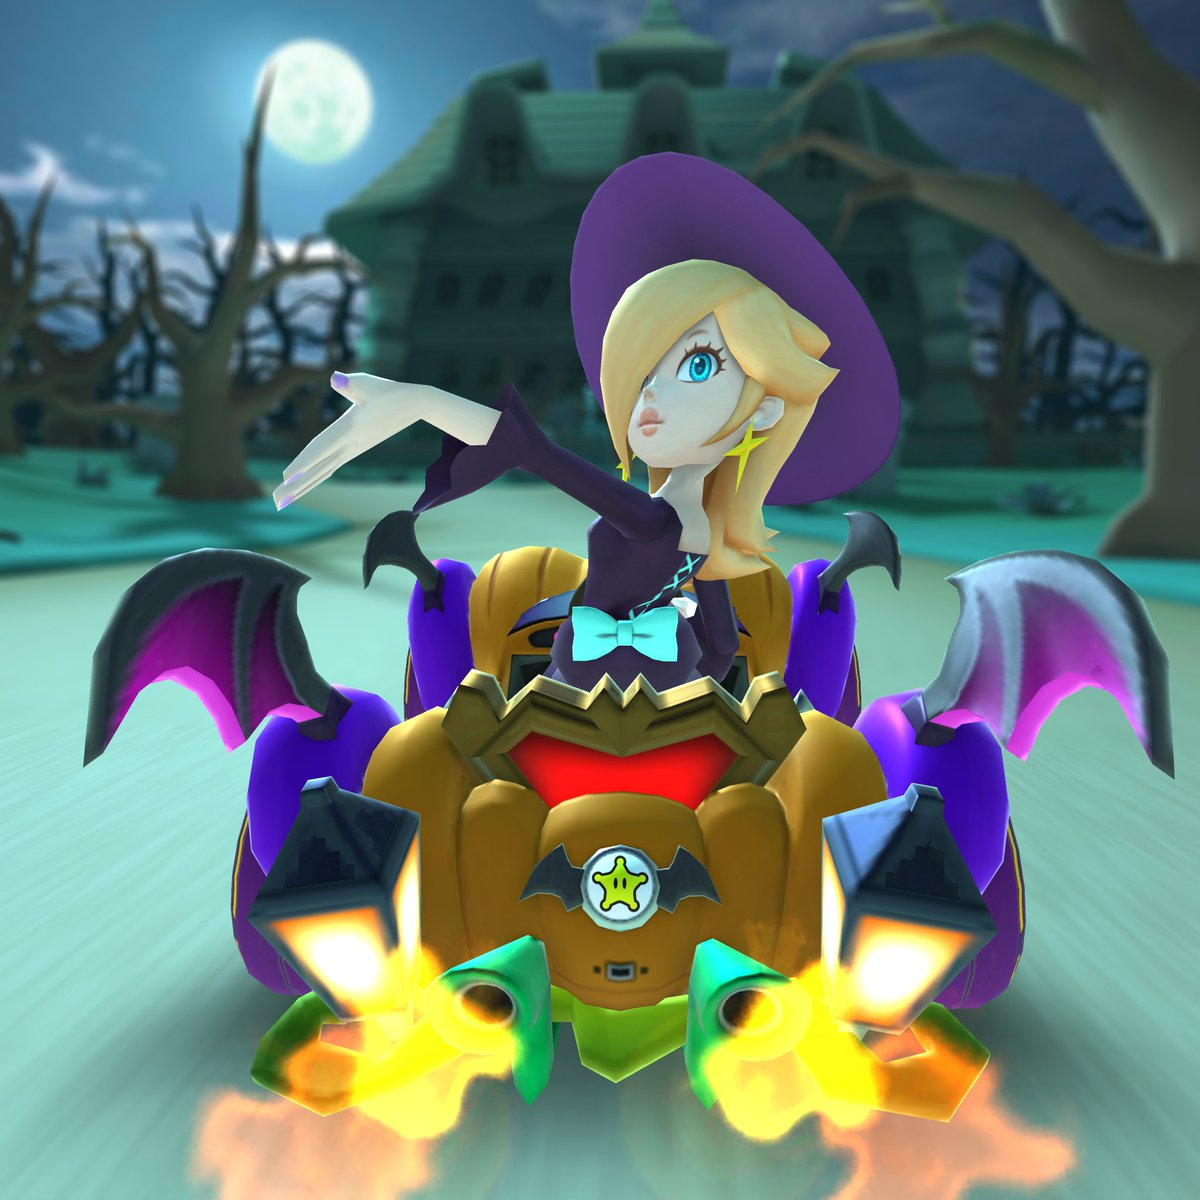 Mario Kart Tour On Twitter Boo Halloween Tour Is Here A Slightly Spooky Halloween Themed Tour Is Now